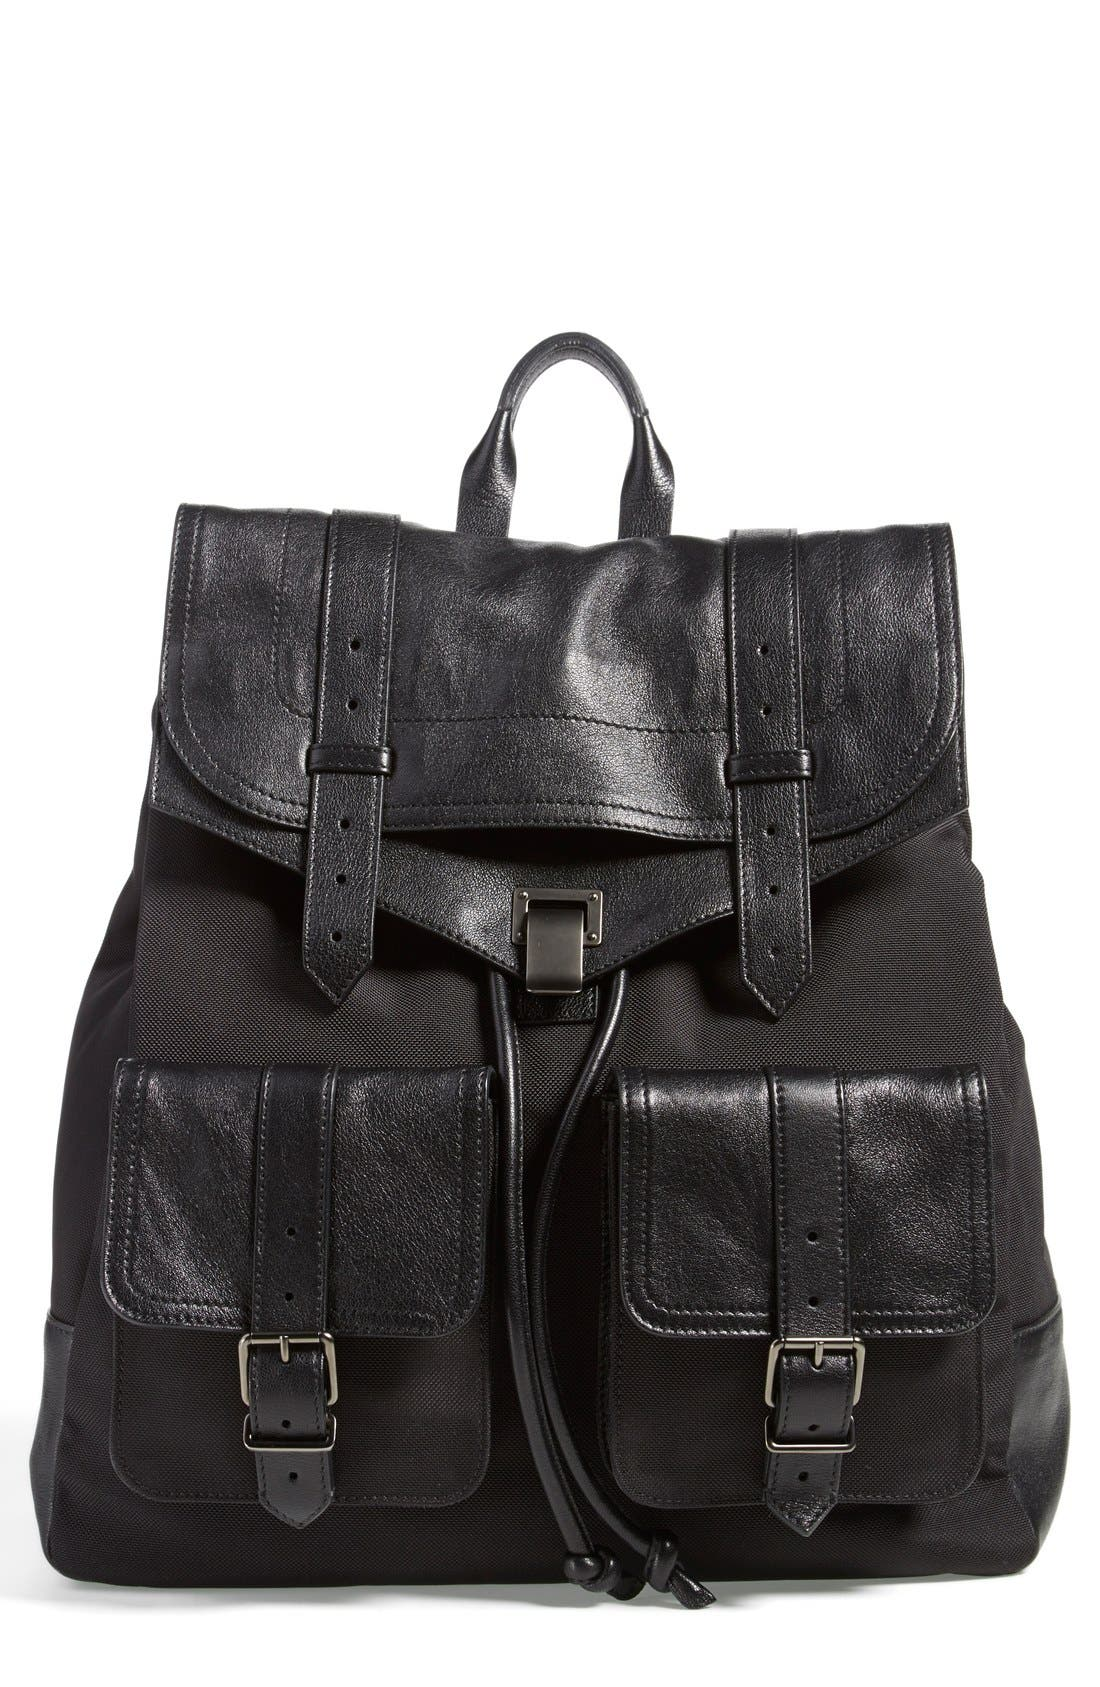 Alternate Image 1 Selected - Proenza Schouler 'Extra Large PS1' Nylon & Leather Backpack